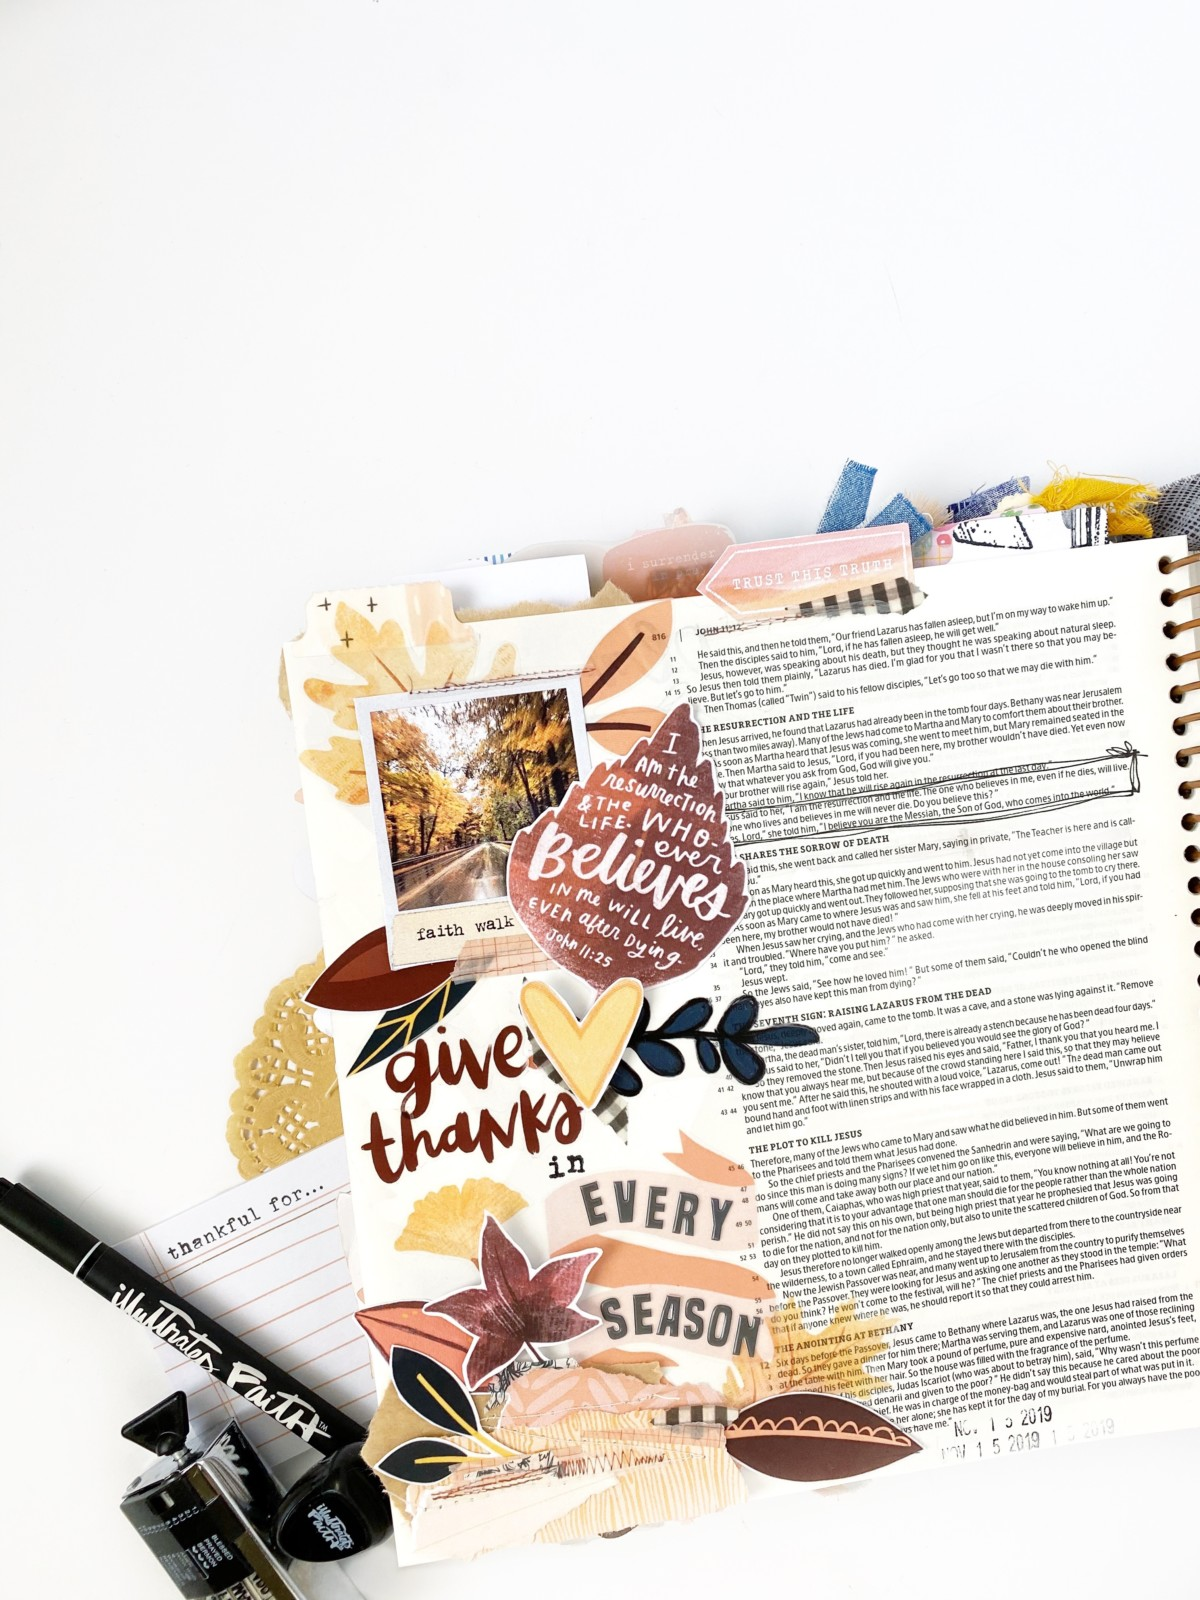 Print and Pray Bible Journaling by Becca Jensen | Give Thanks in Every Season | John 11:25